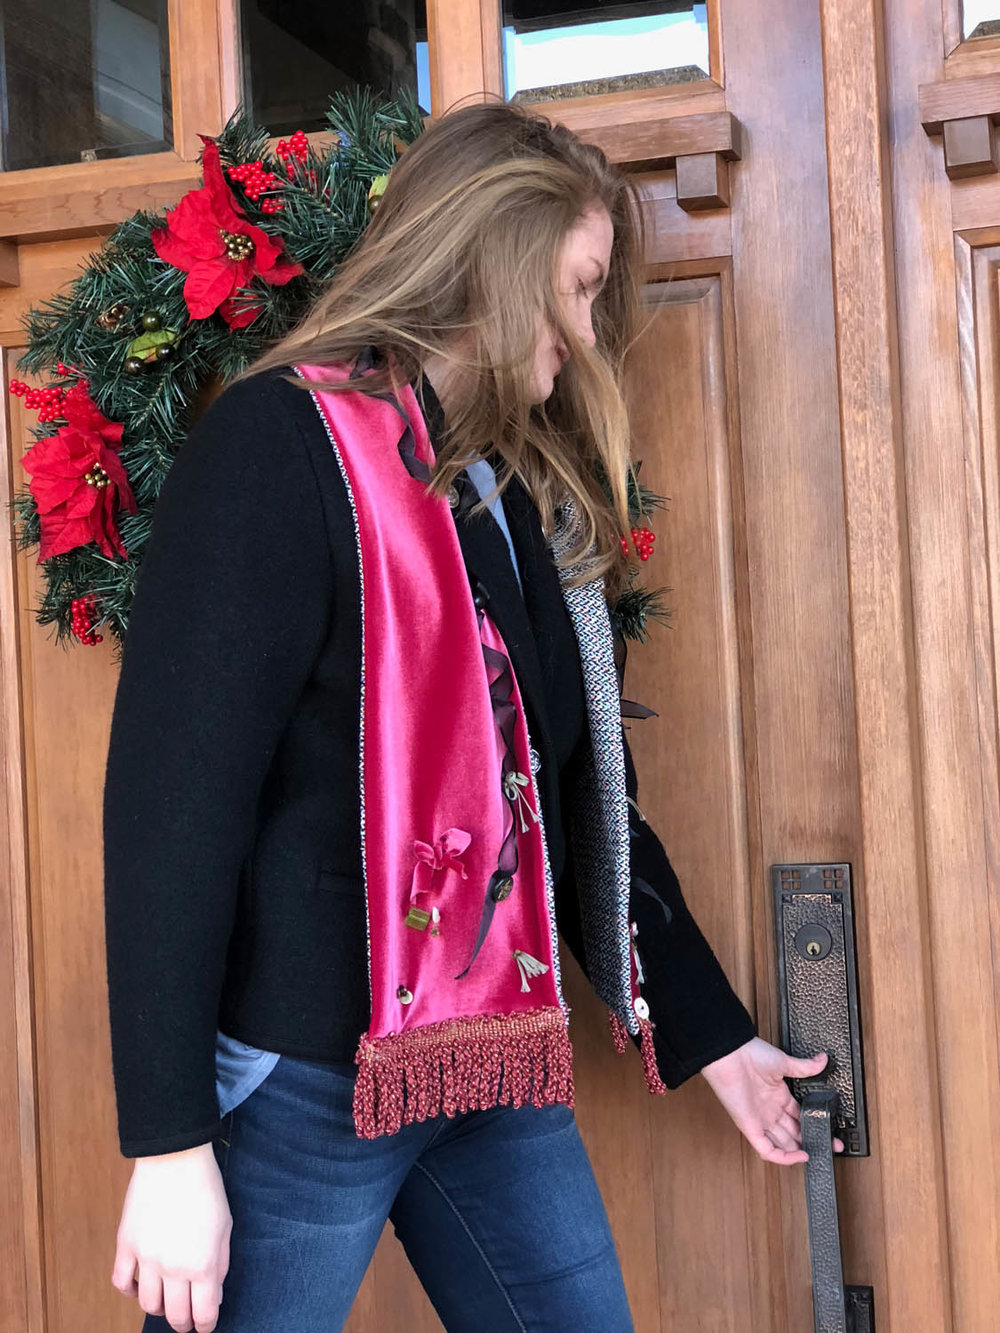 woman by door with Christmas wreath wearing red velvet embellished scarf